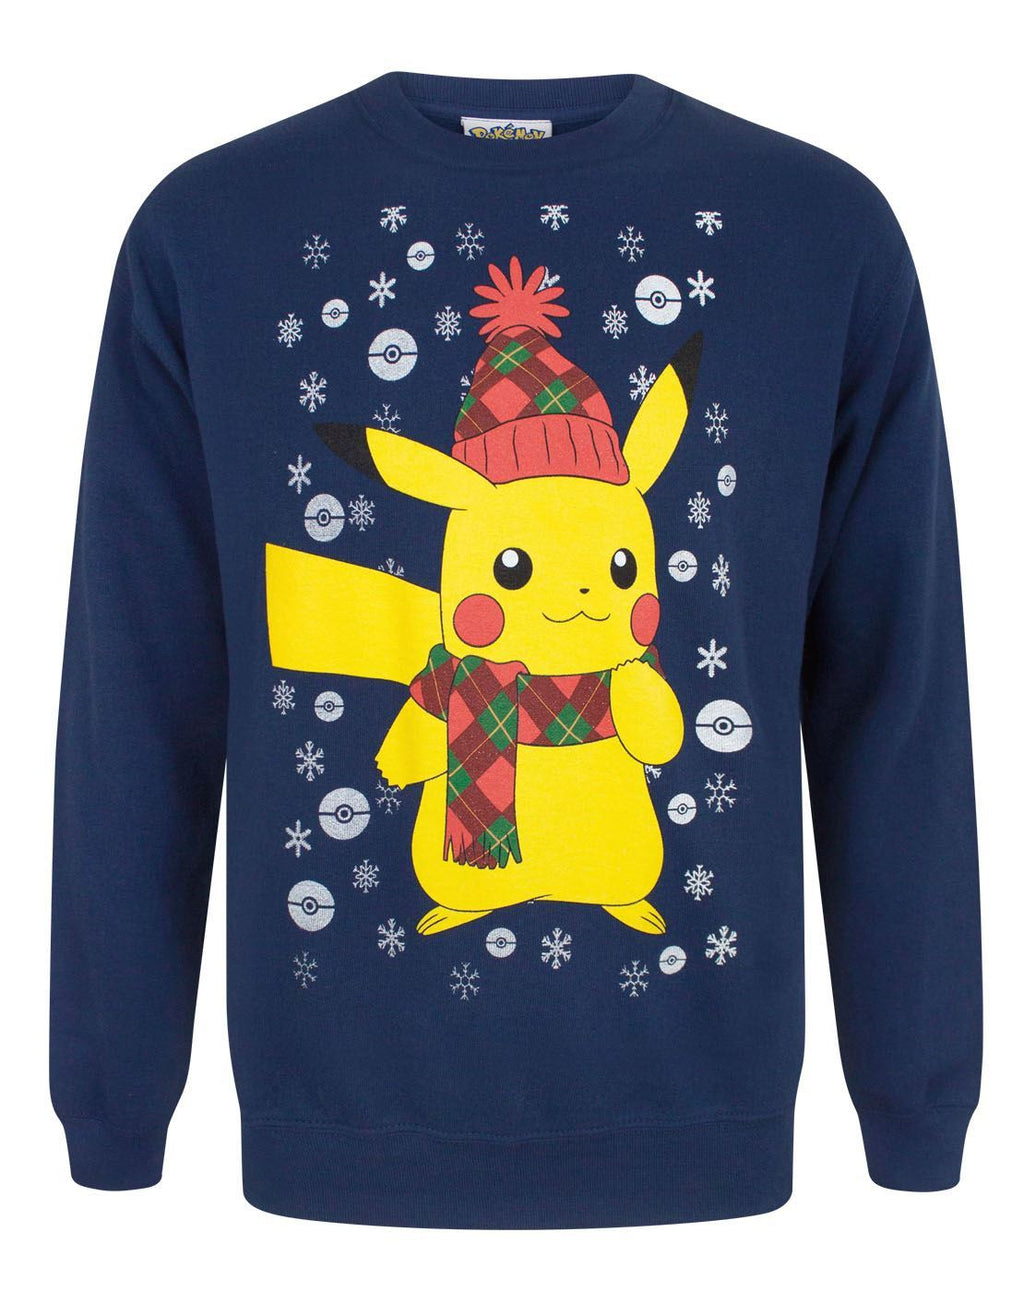 Pokemon Pikachu Men's Christmas Sweater